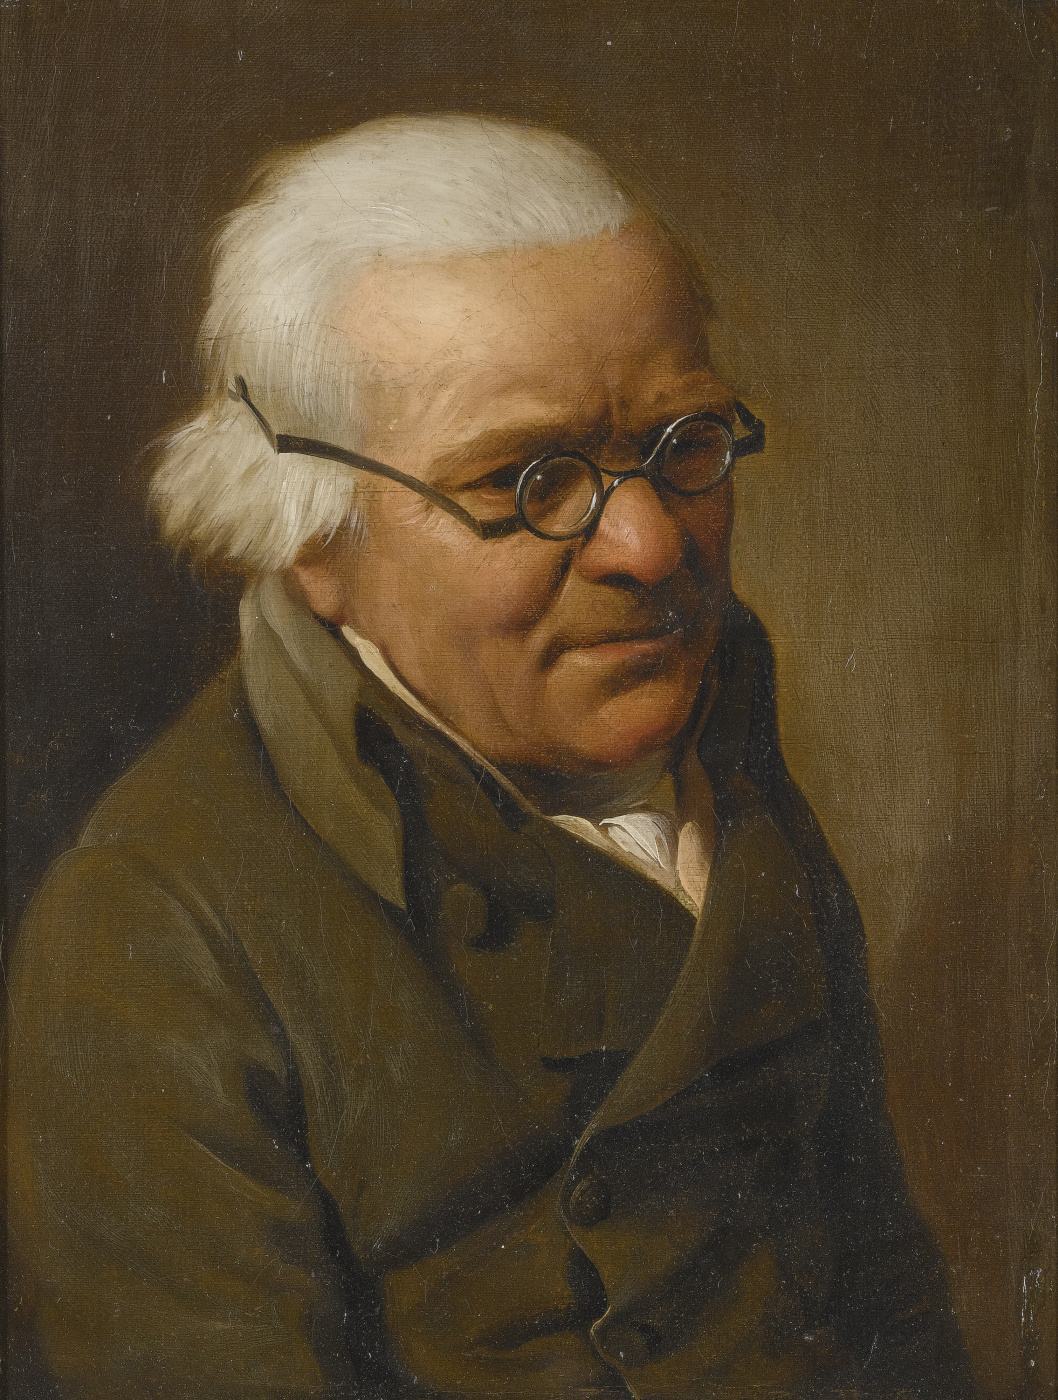 Louis-Leopold Boi. Portrait of a gray-haired man with glasses